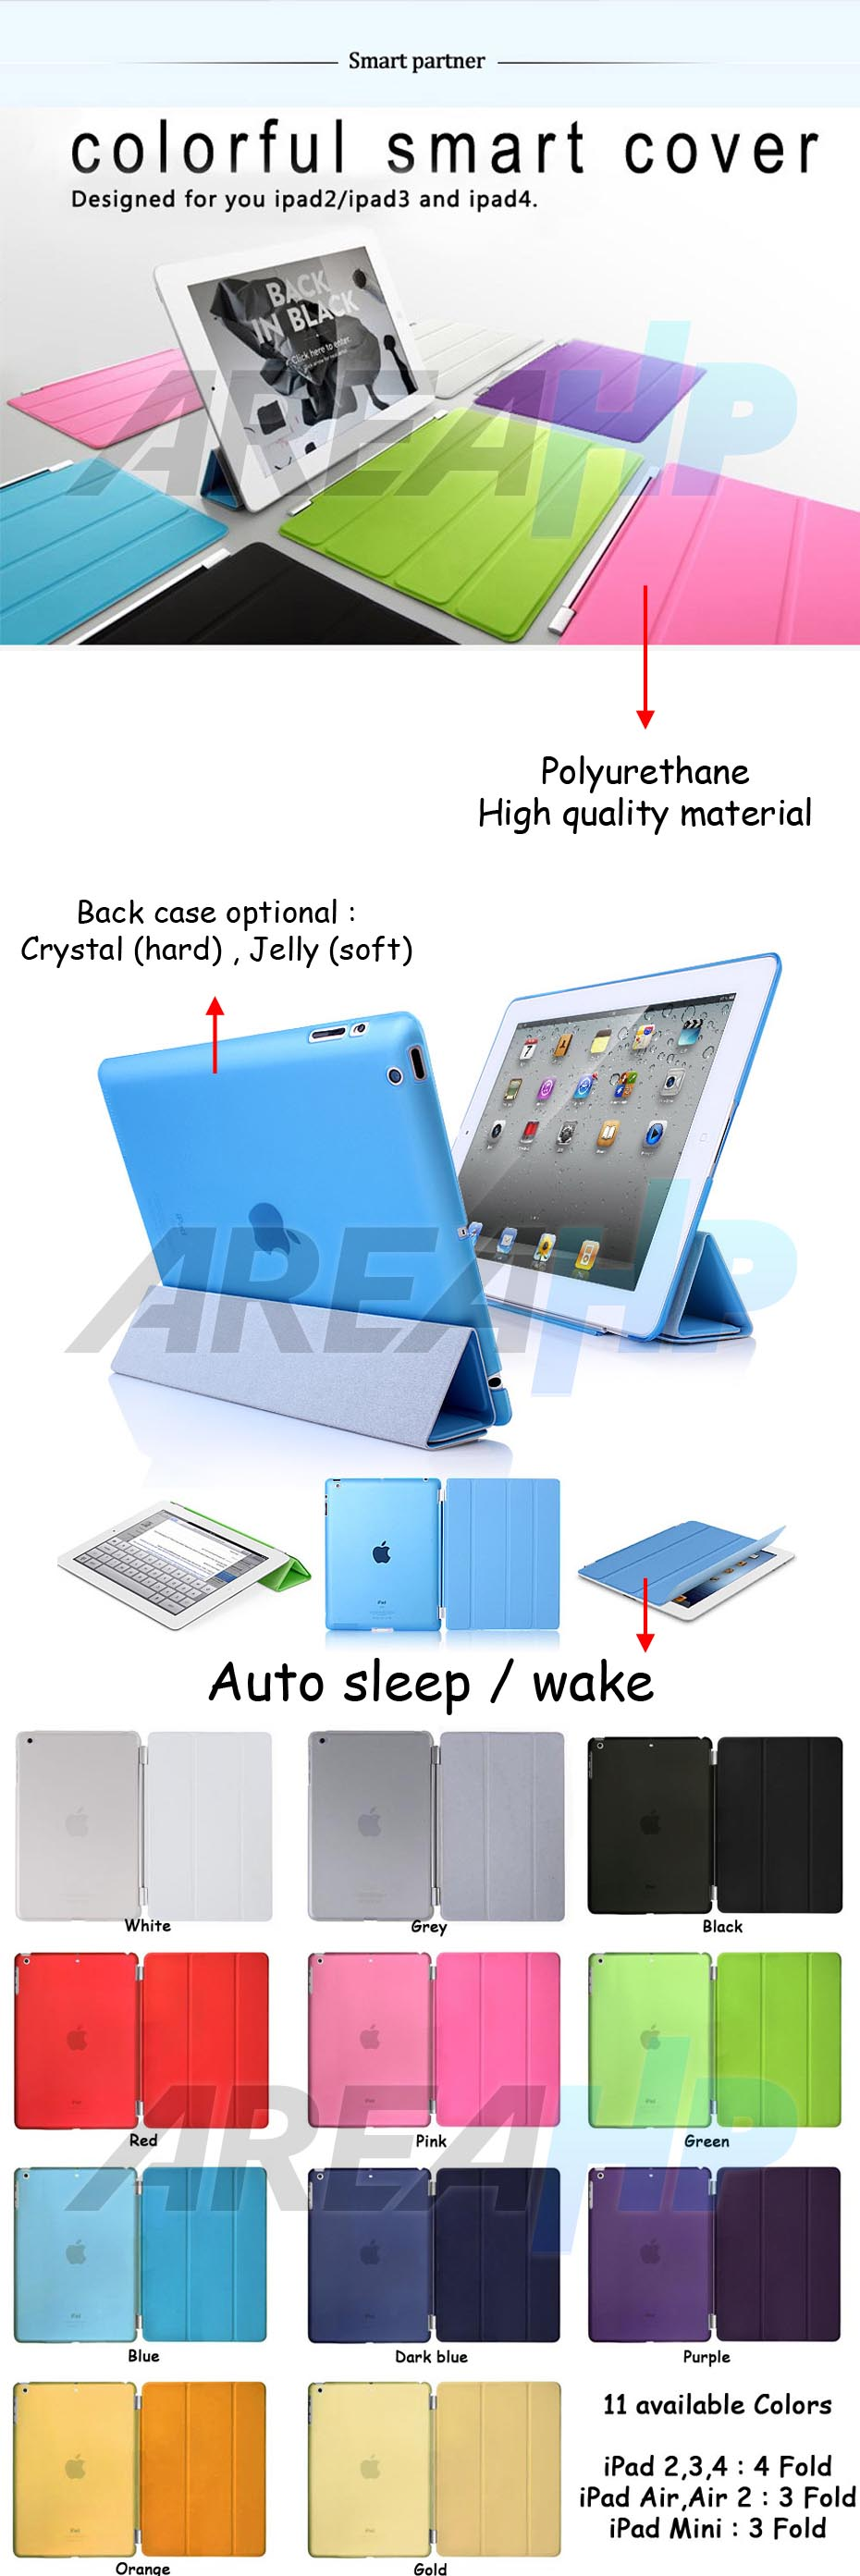 Smart Case (Polyurethane) for iPad 2, 3, 4 Overview